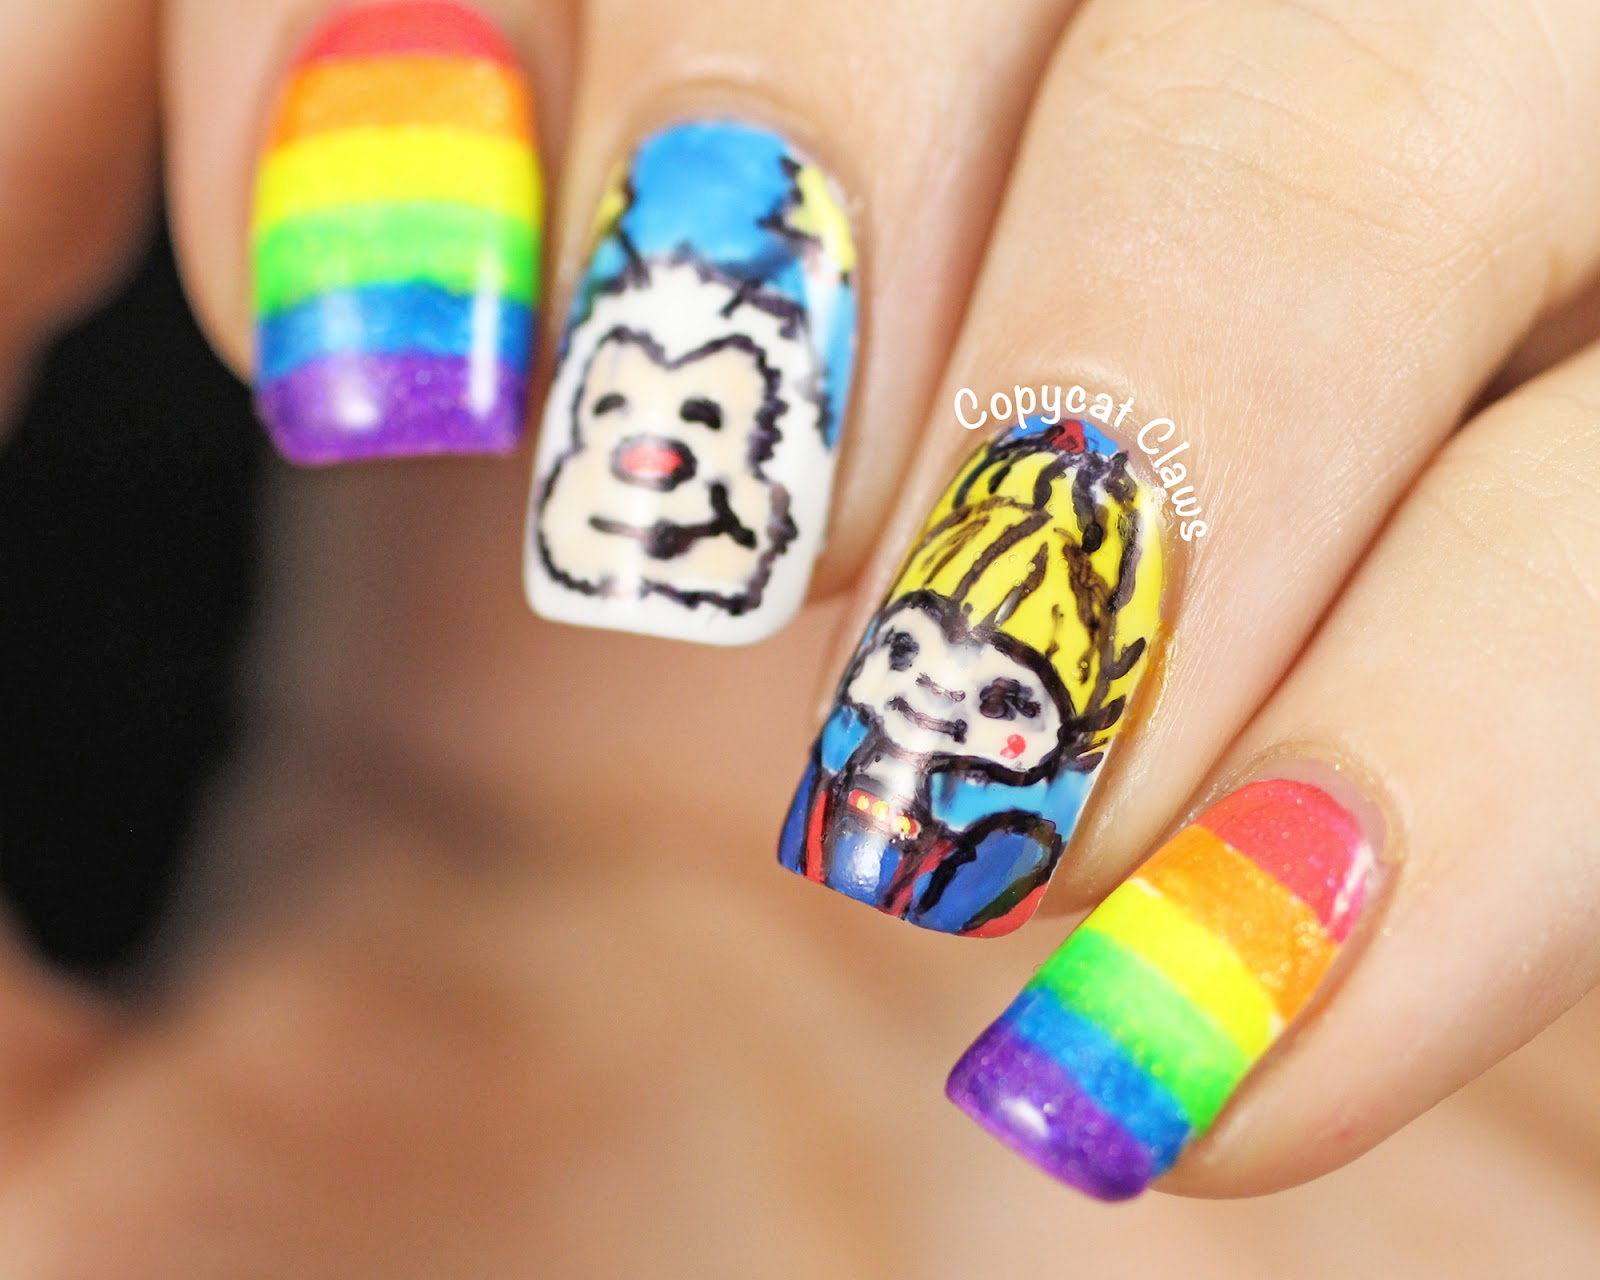 Copycat claws 31dc2014 day 9 rainbow brite nail art for those of you who are either too young or elsewhere on the globe rainbow brite was a tv show back in the 80s honestly i dont remember the tv show at prinsesfo Gallery